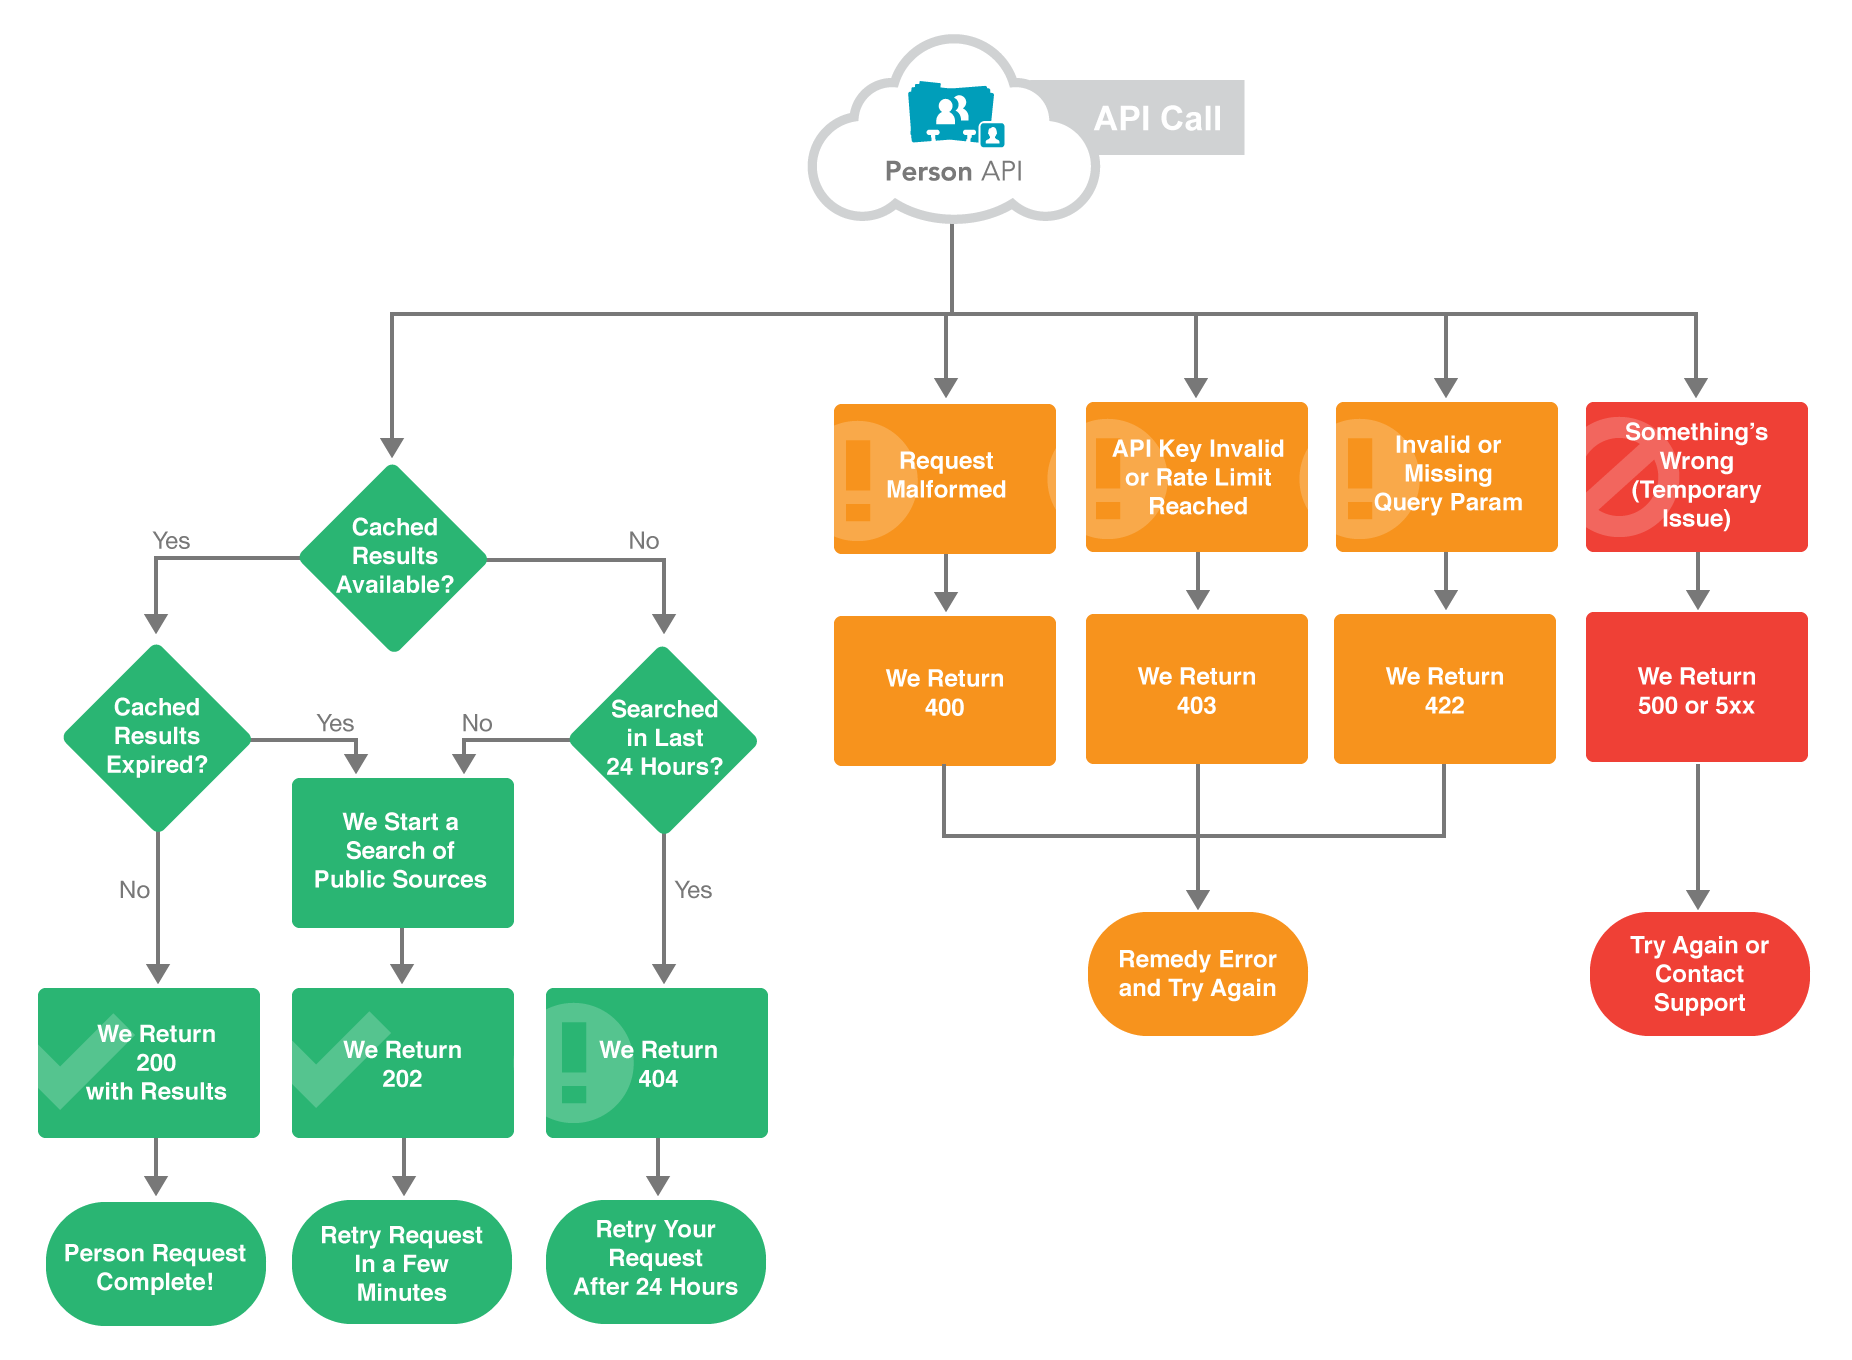 FullContact Person API Flow Diagram